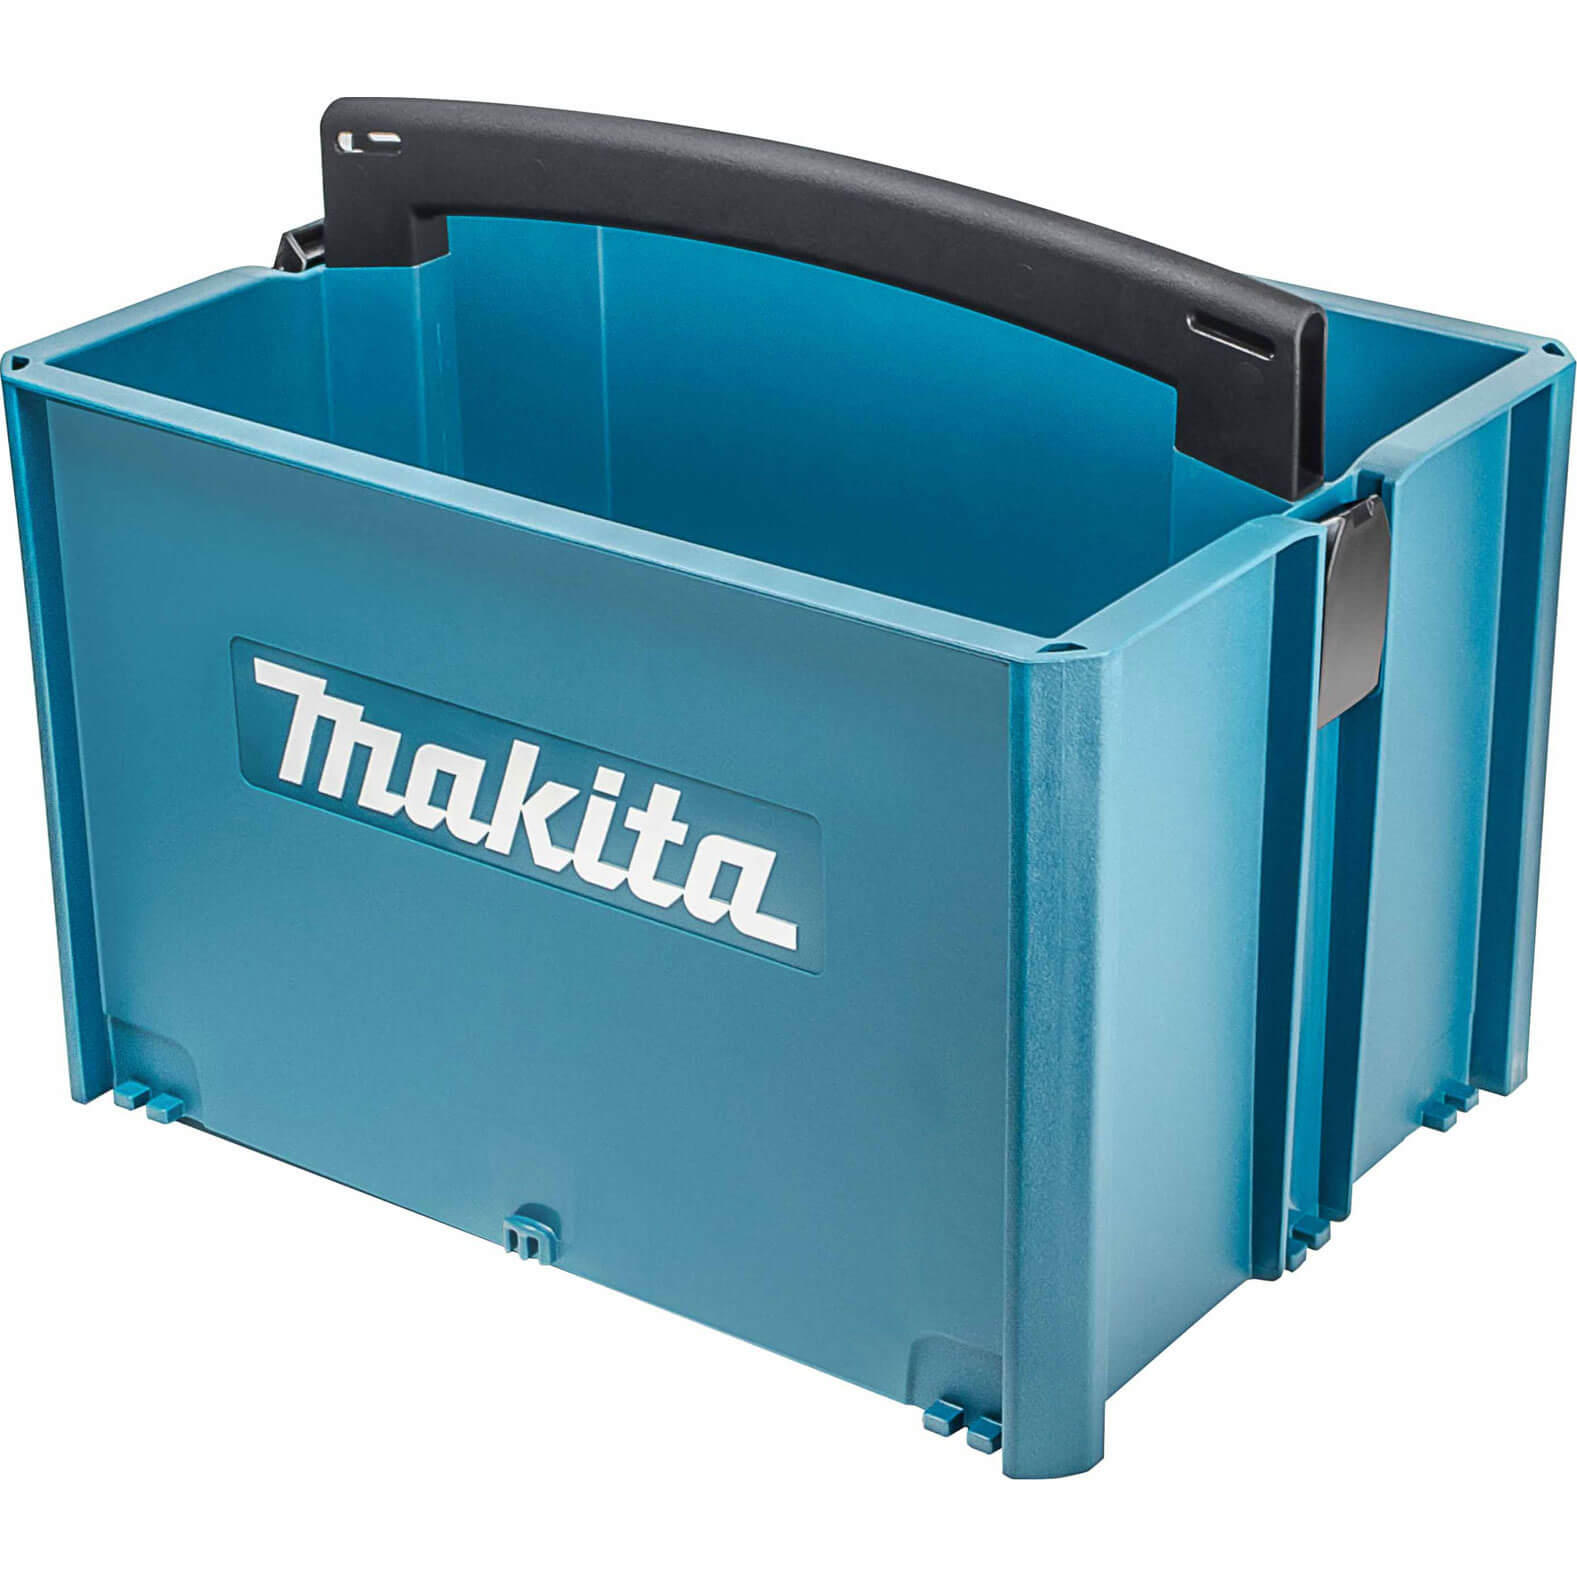 Image of Makita MaKPac Stackable Tote Tool Box 396mm 296mm 325mm